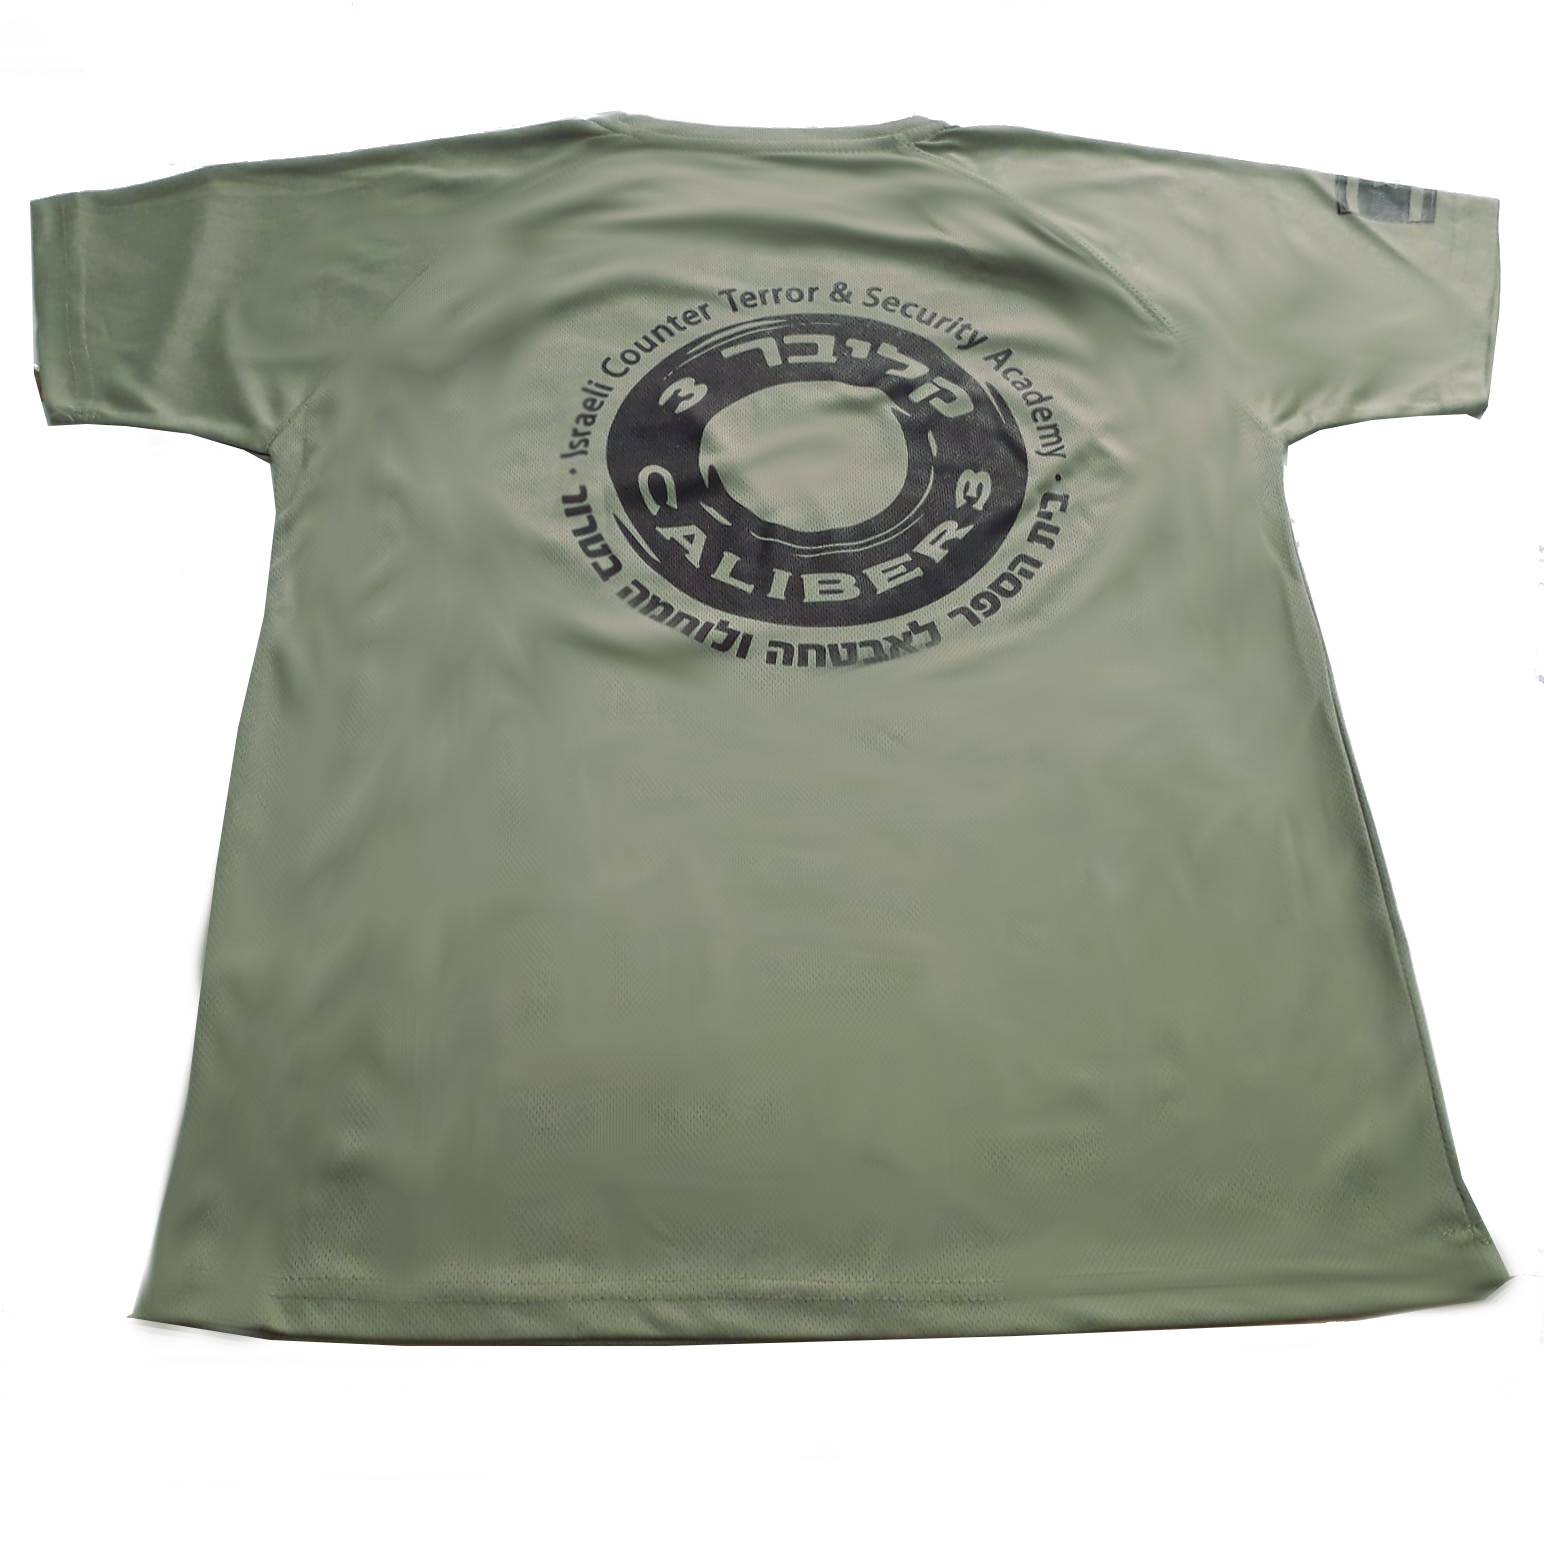 caliber 3 green cotton shirt back view.jpeg